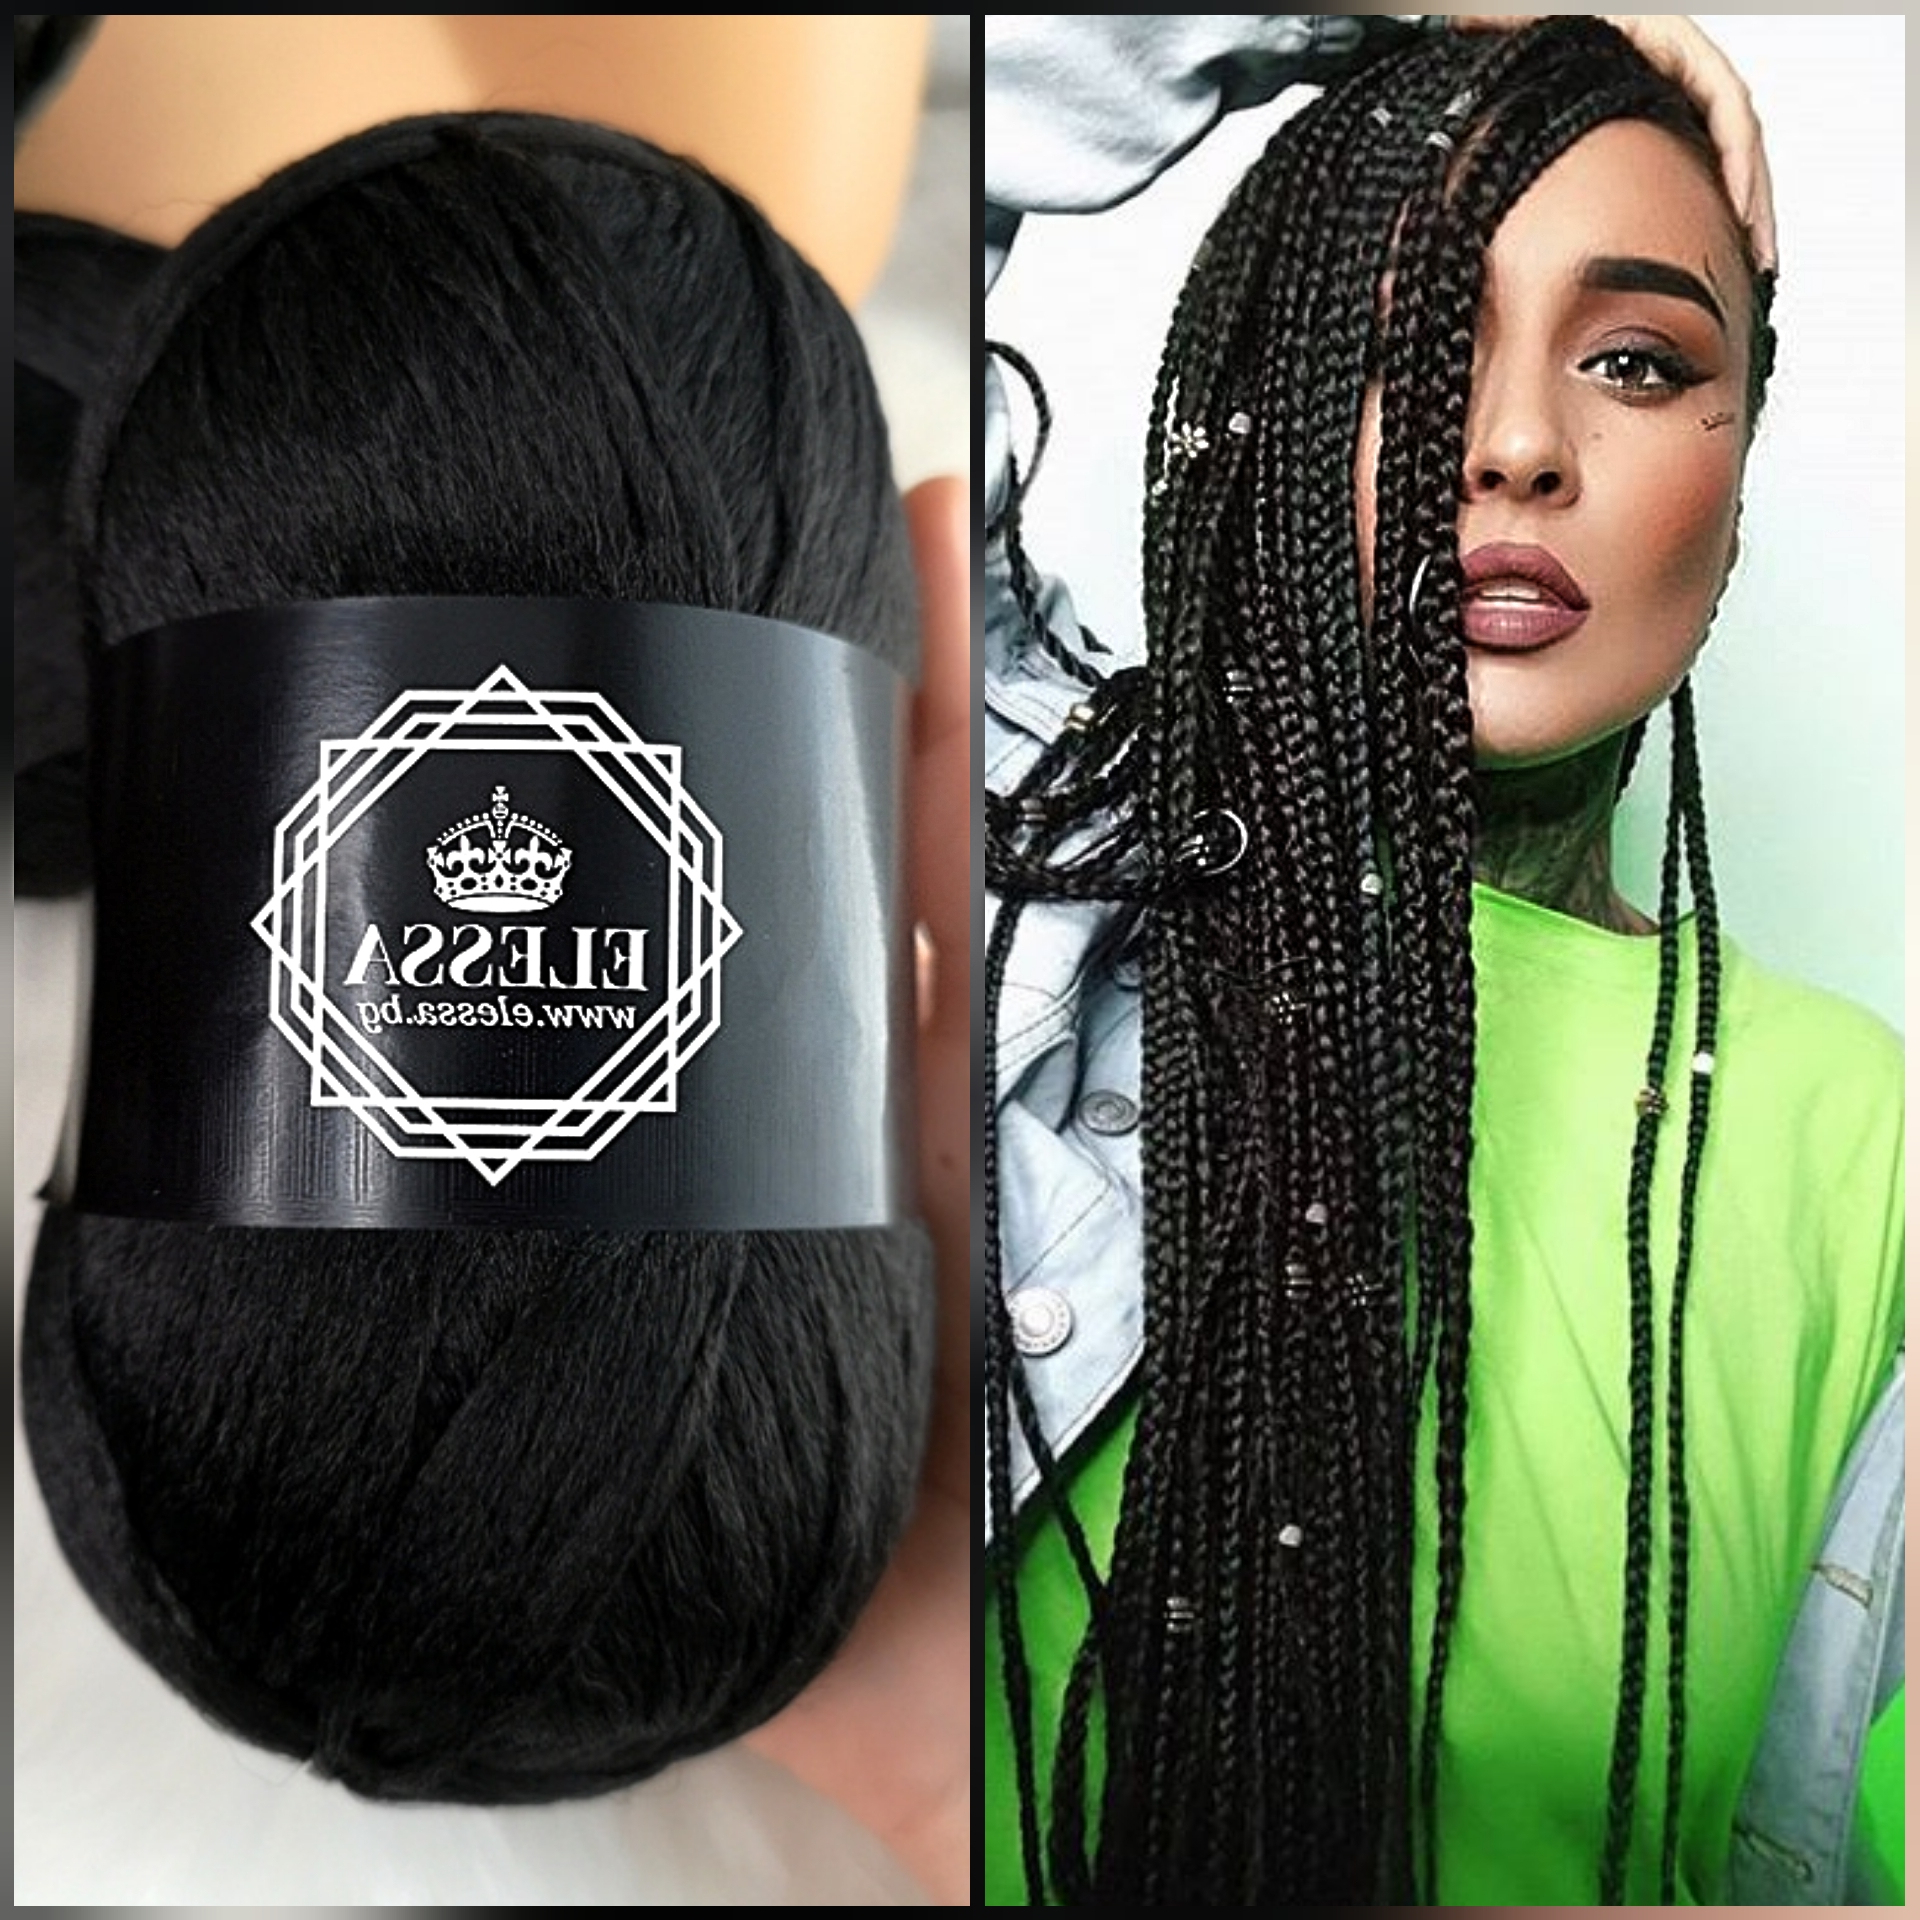 Brazilian Yarn For Braids High Quality Acrylic Wool For Hair For Newest Long Black Yarn Twists Hairstyles (View 20 of 20)